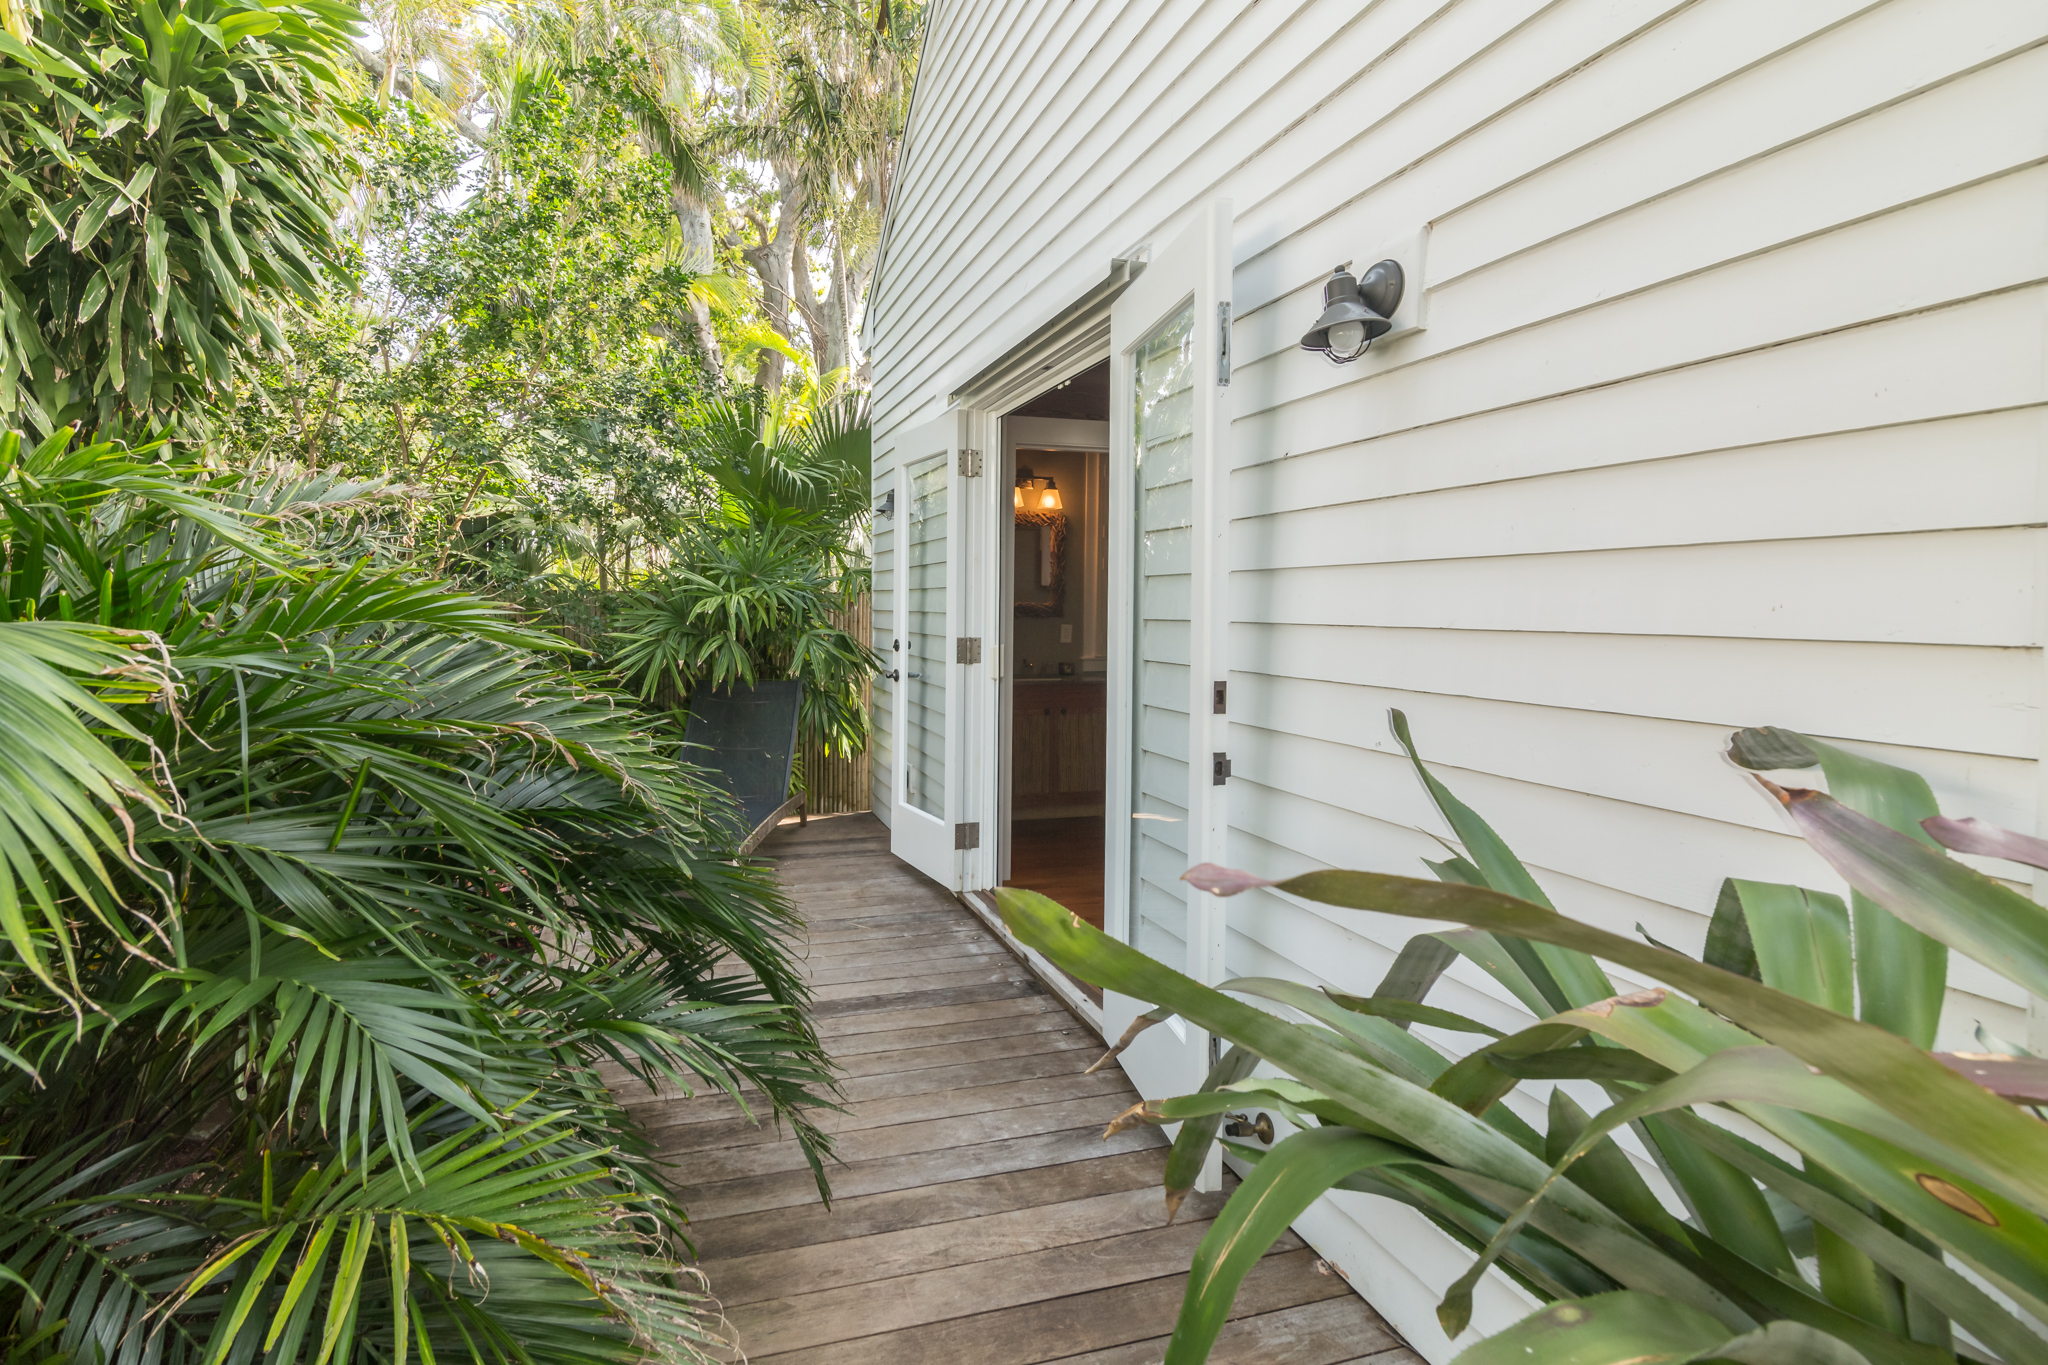 515 517 Margaret Street Key West FL 33040 | MLS #578484